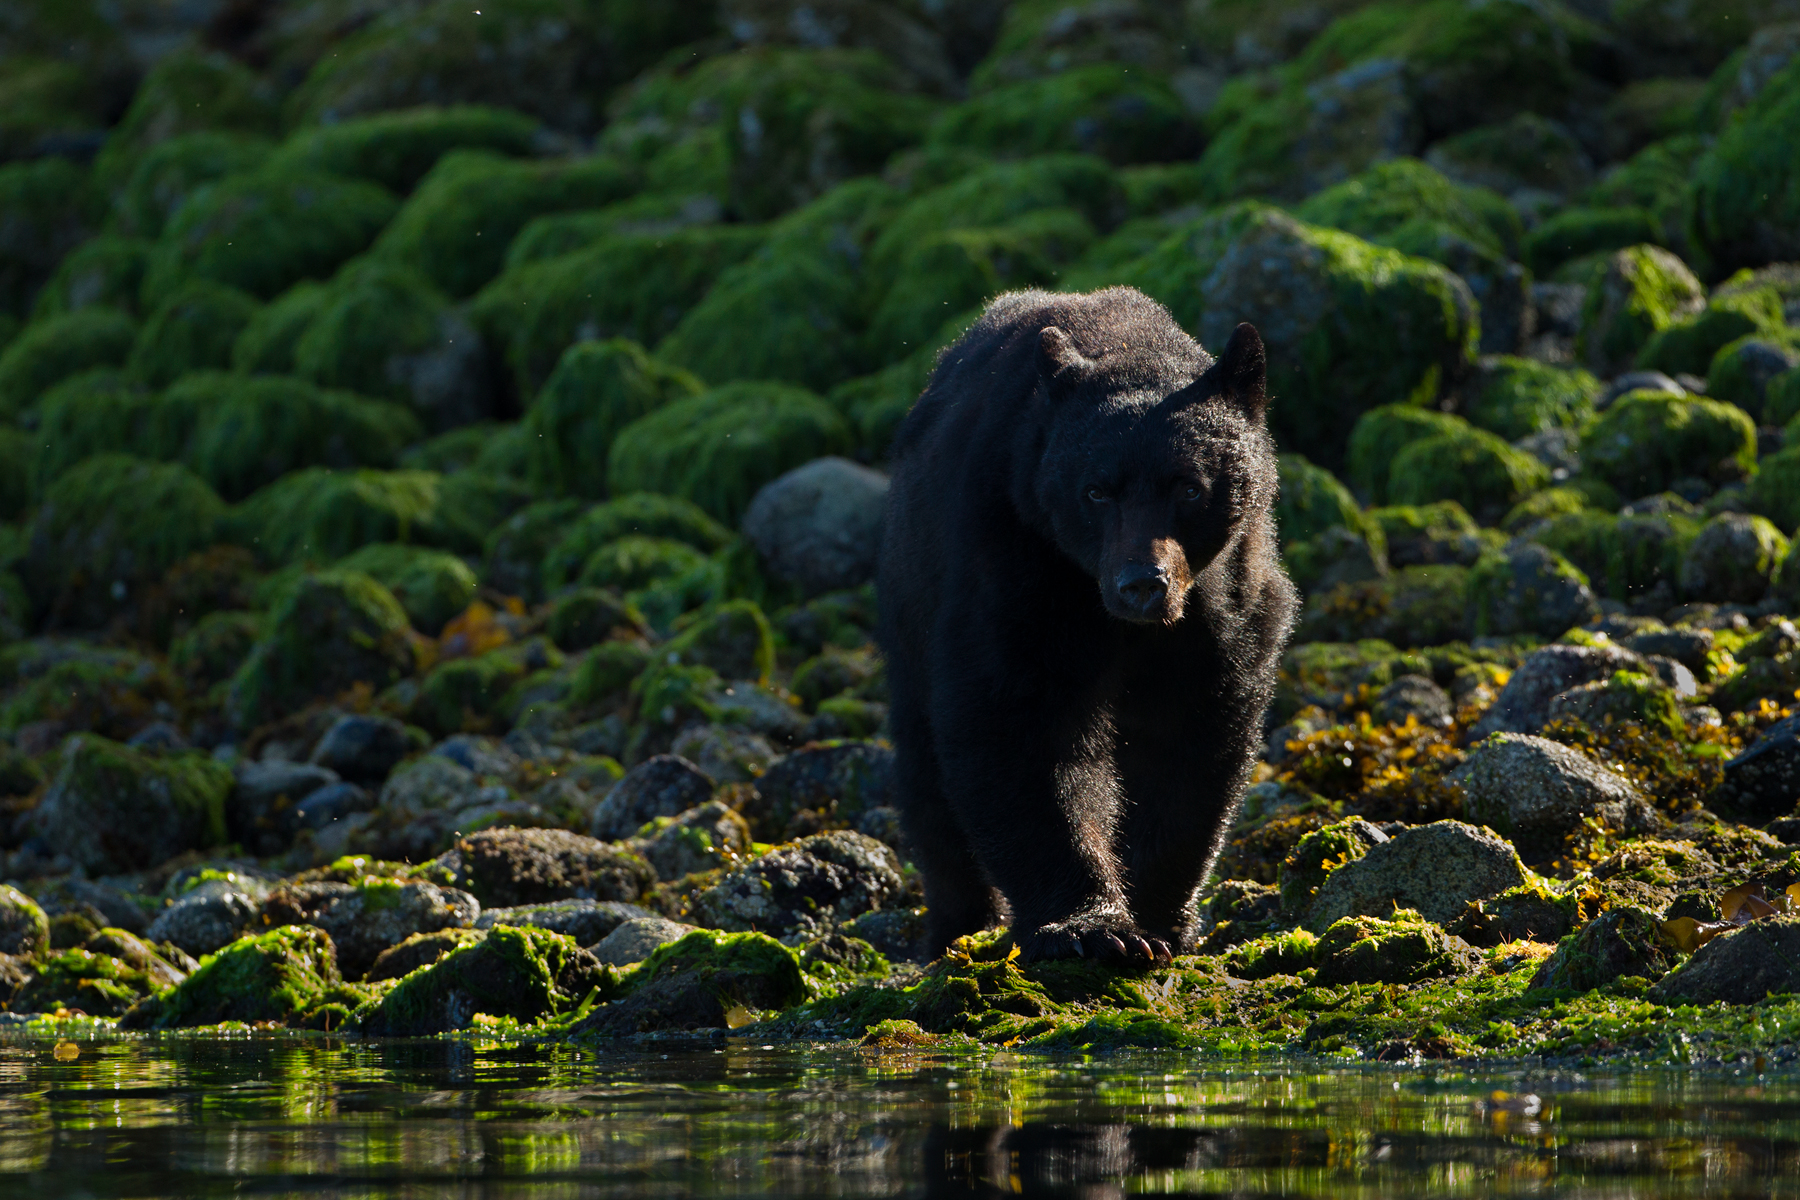 A large Black Bear boar makes his way down the shoreline. Taken off the west coast of Vancouver Island, B.C, Canada.  Image ©Connor Stefanison